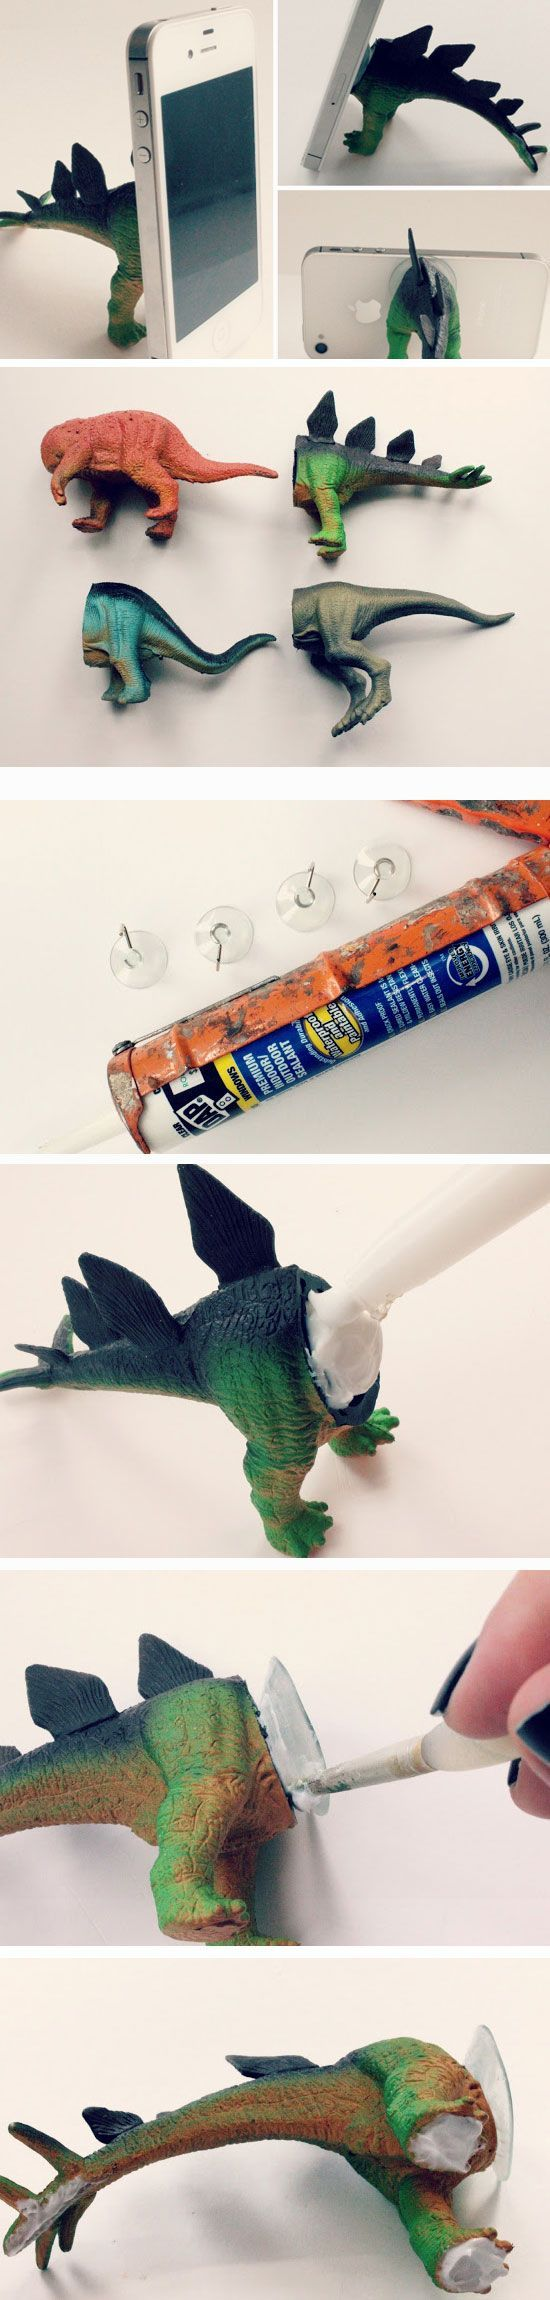 Dino iPhone Tripod | 20+ DIY Christmas Gifts for Men | DIY Christmas Gifts for Teen Boys